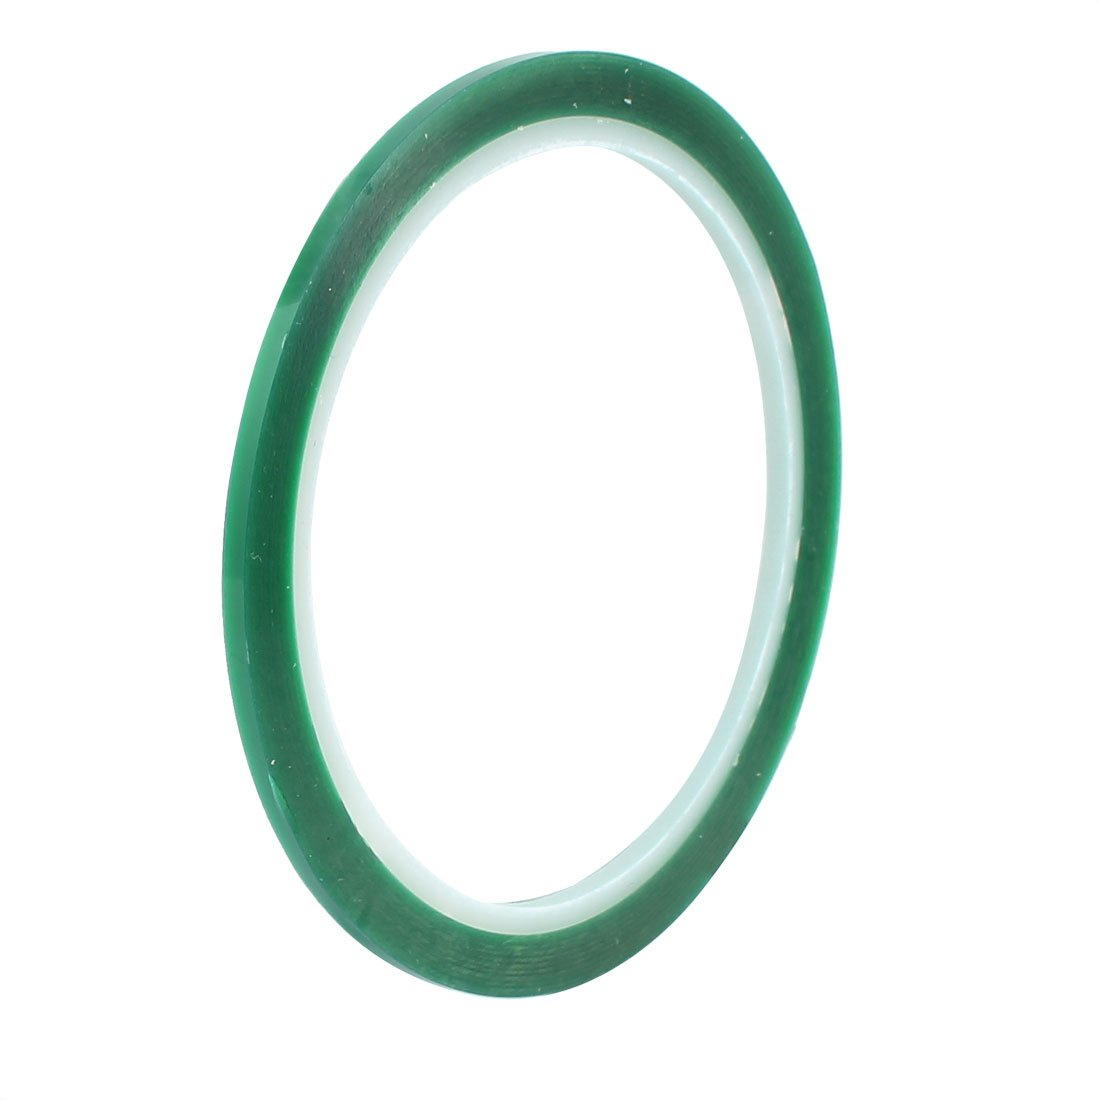 uxcell 3mm Width 33M Length Green PET Self Adhesive Tape High Temp Heat Resistant